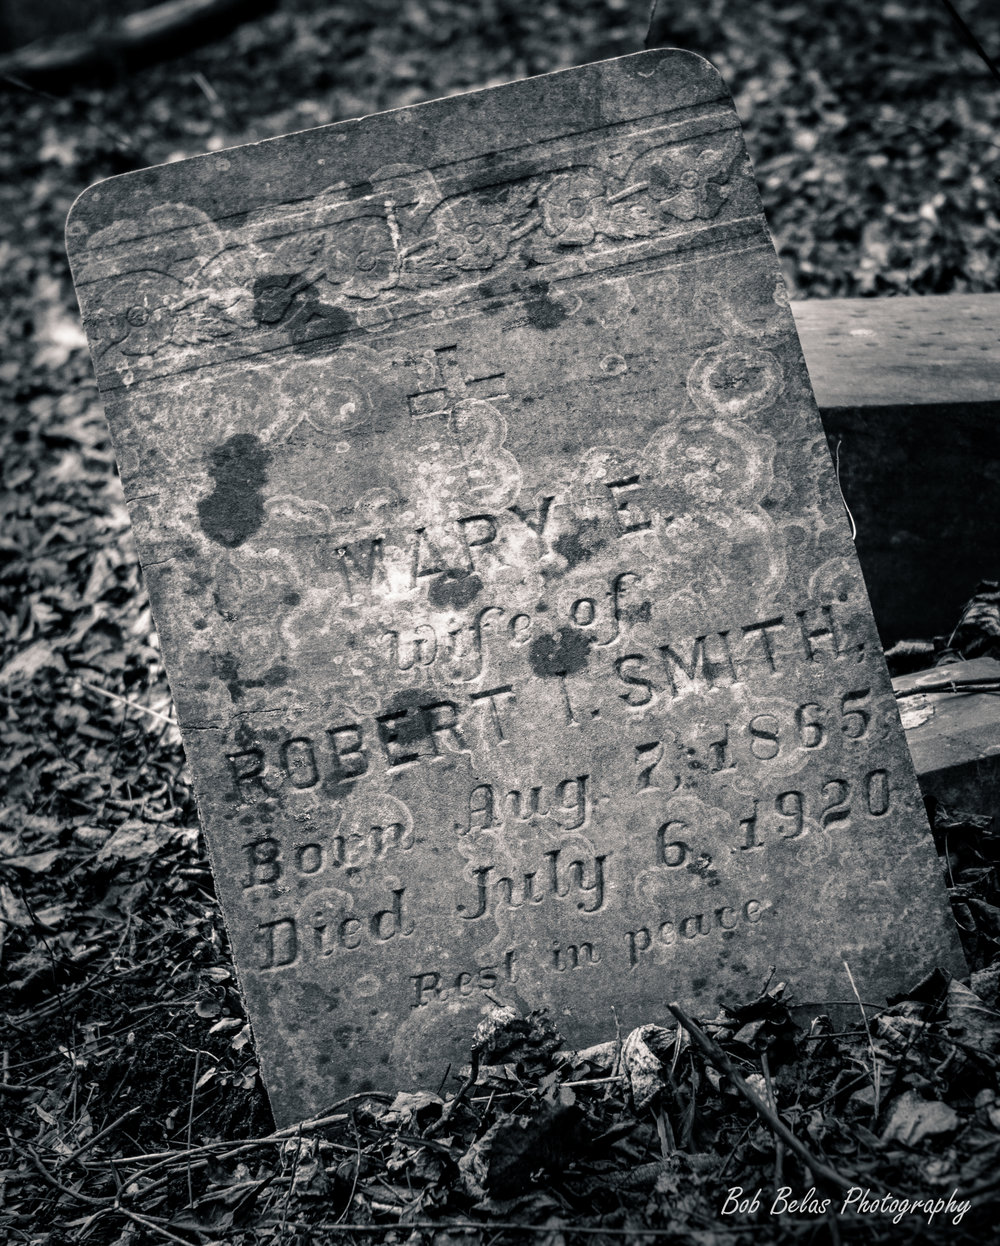 Mary Smith's Grave, monochrome